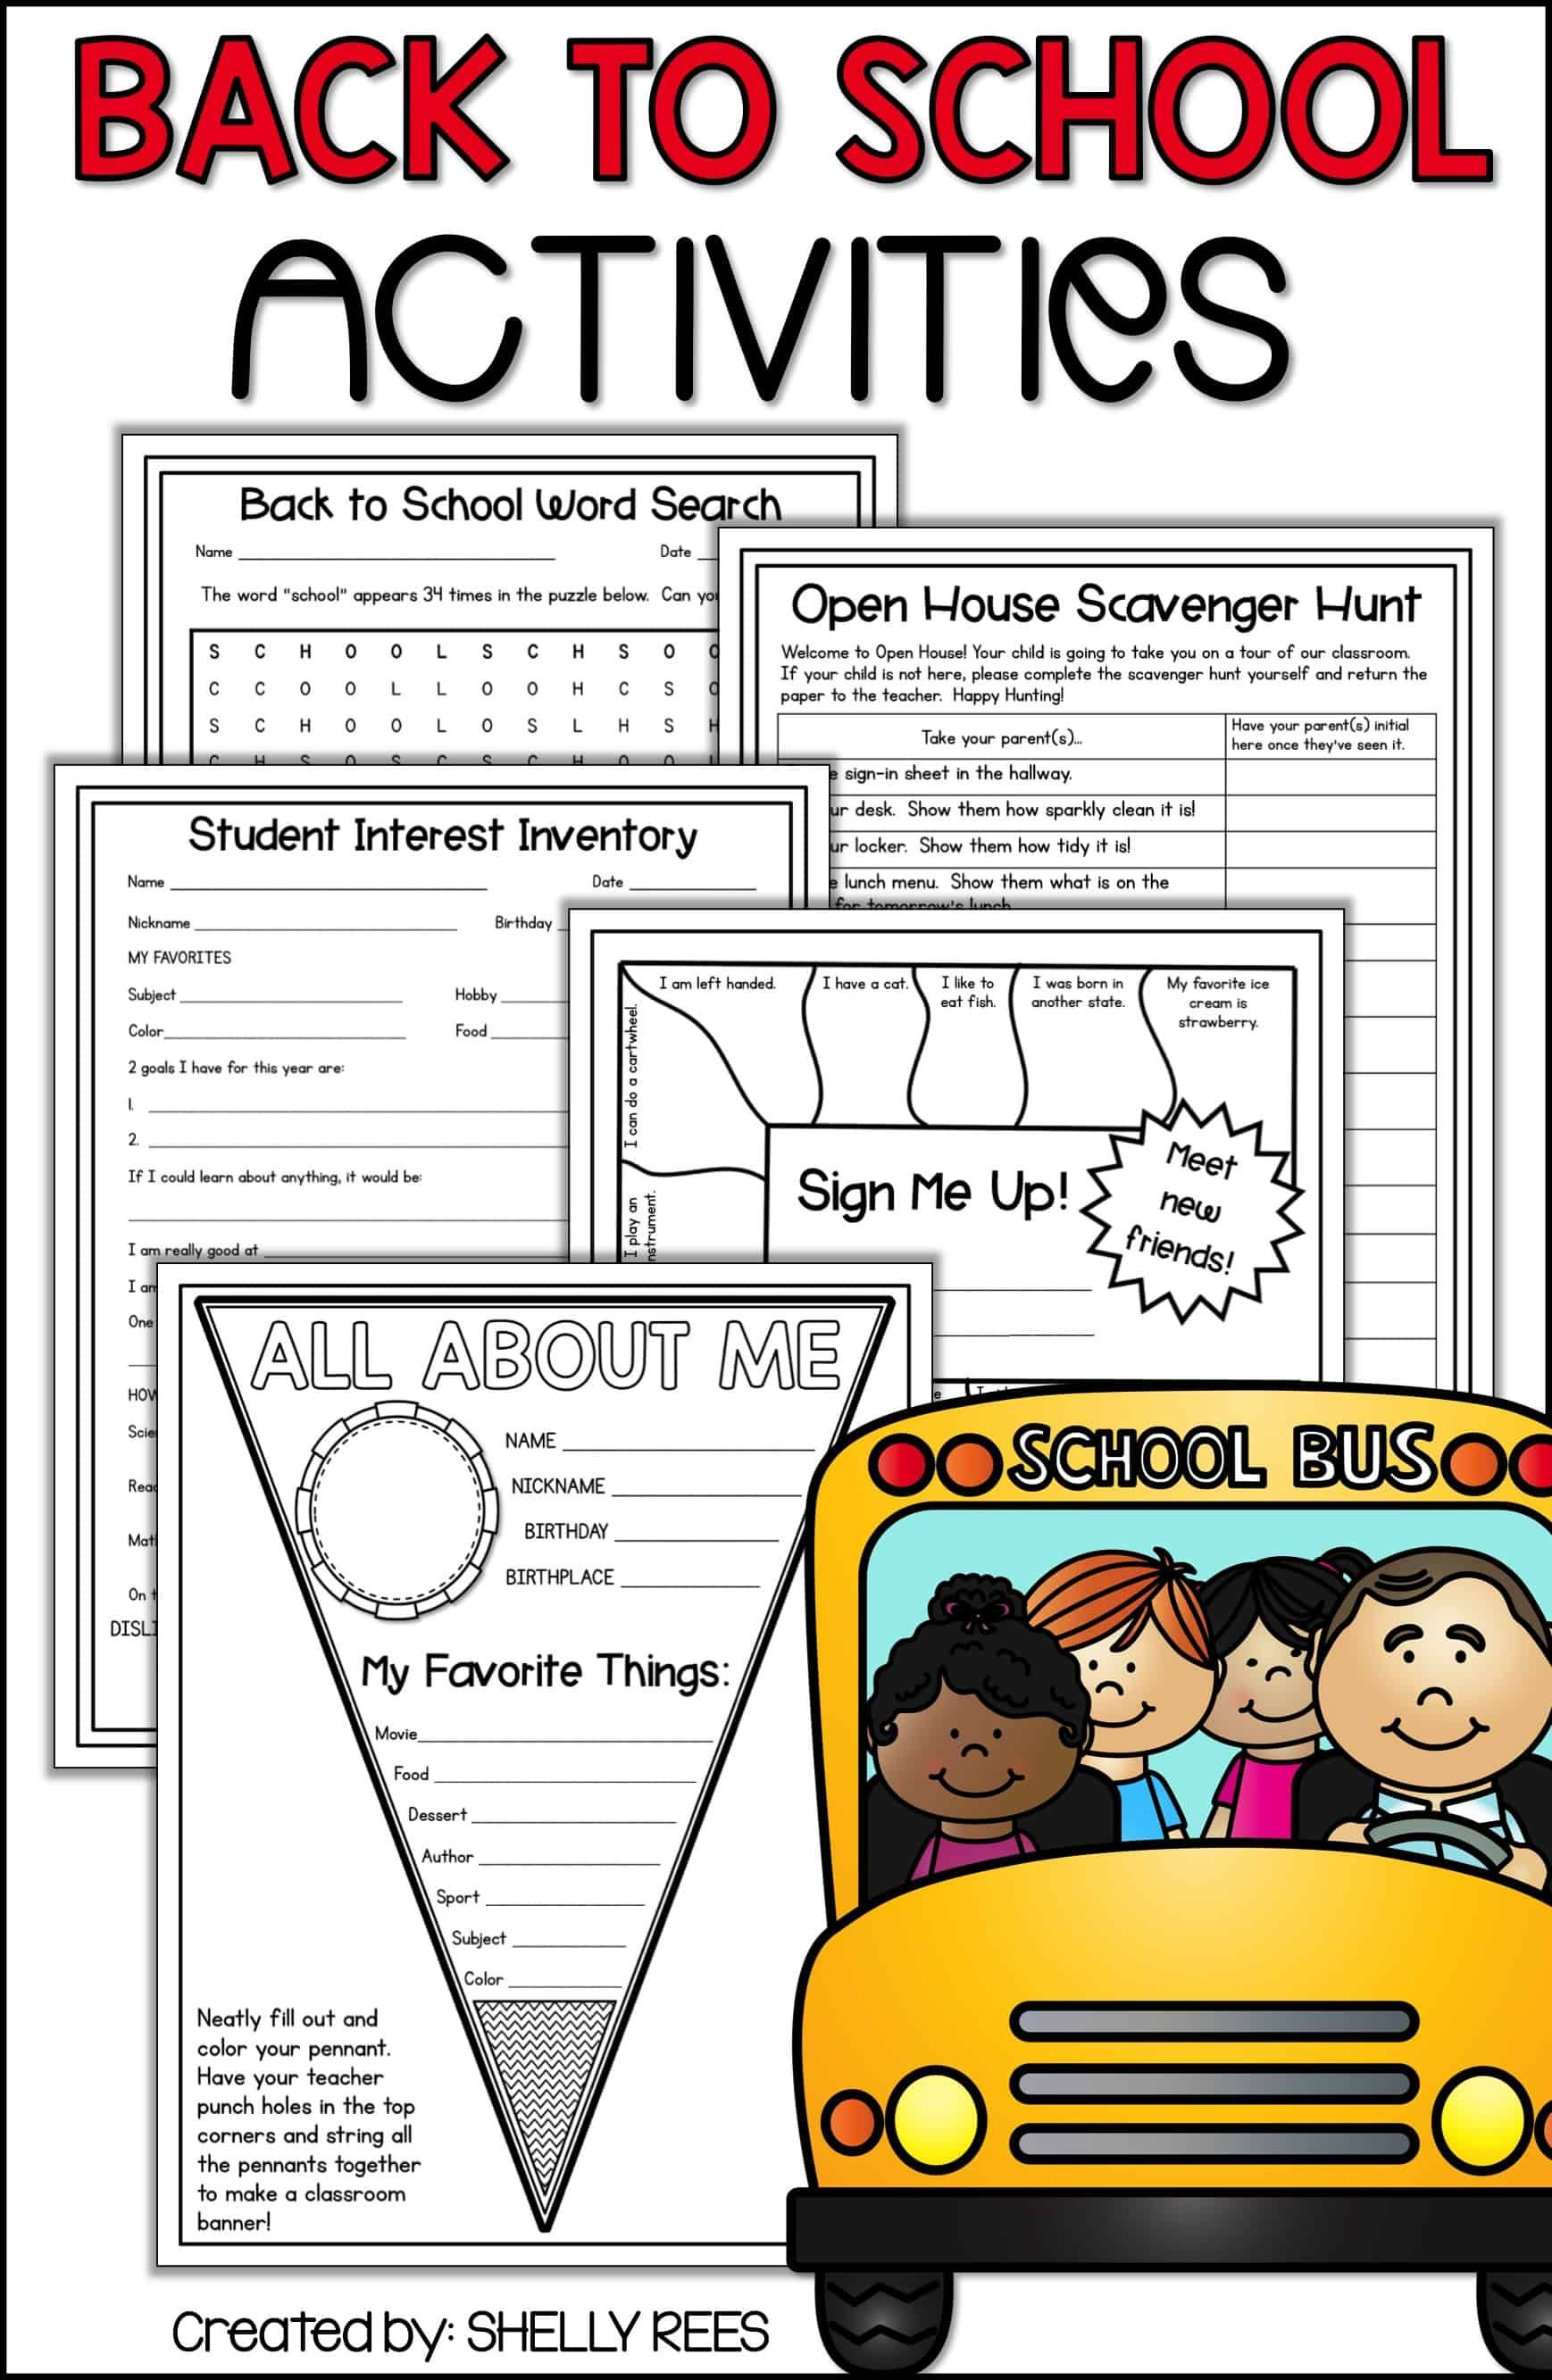 small resolution of Back to School Activities for Elementary Teachers - Appletastic Learning    Back to school activities